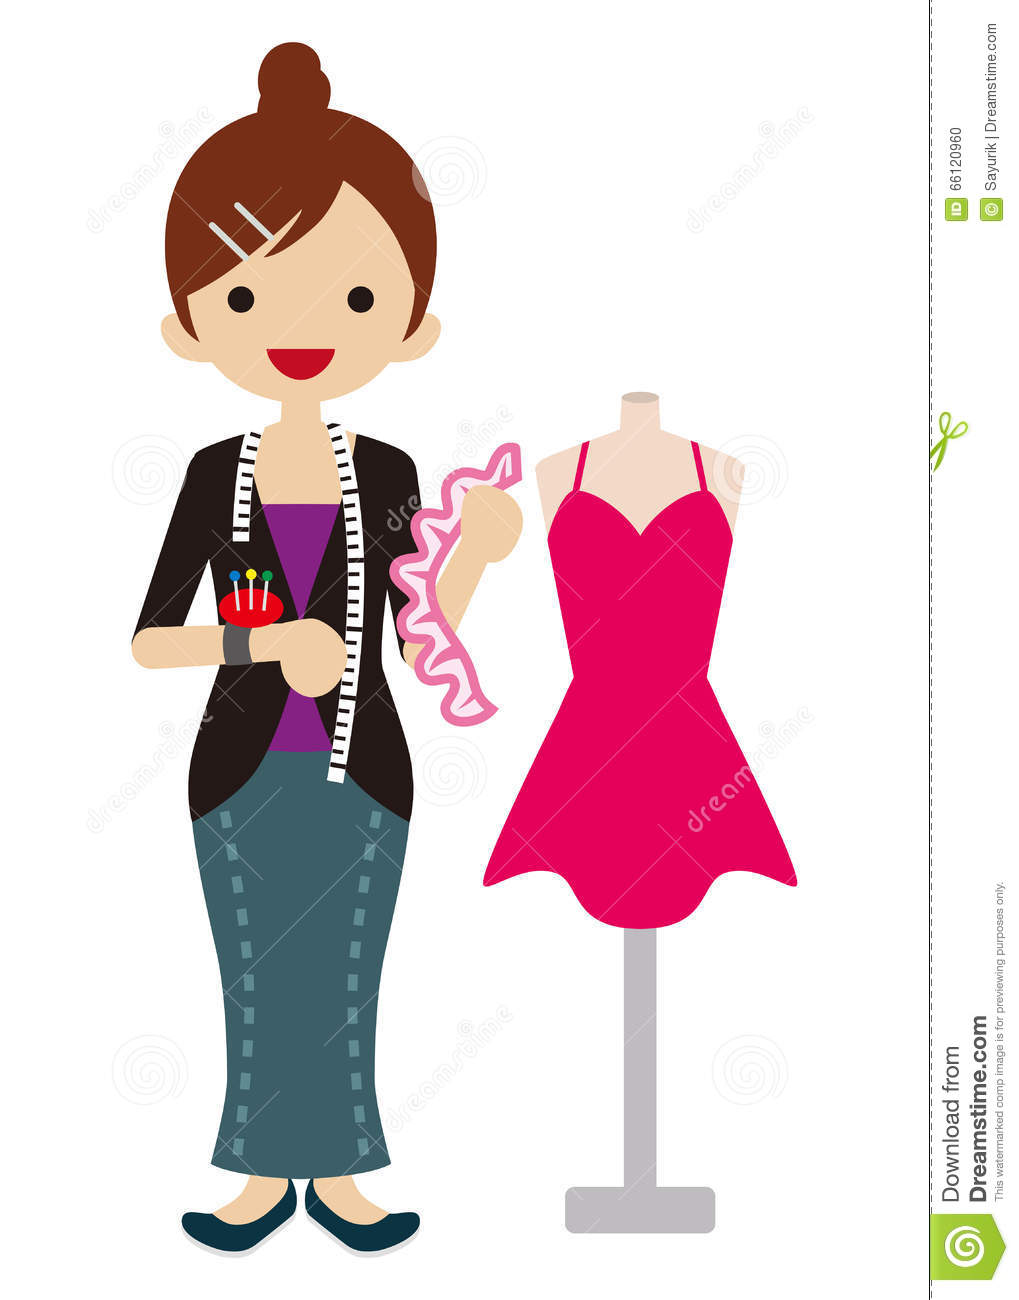 Character Design Icon : Female fashion designer stock vector illustration of